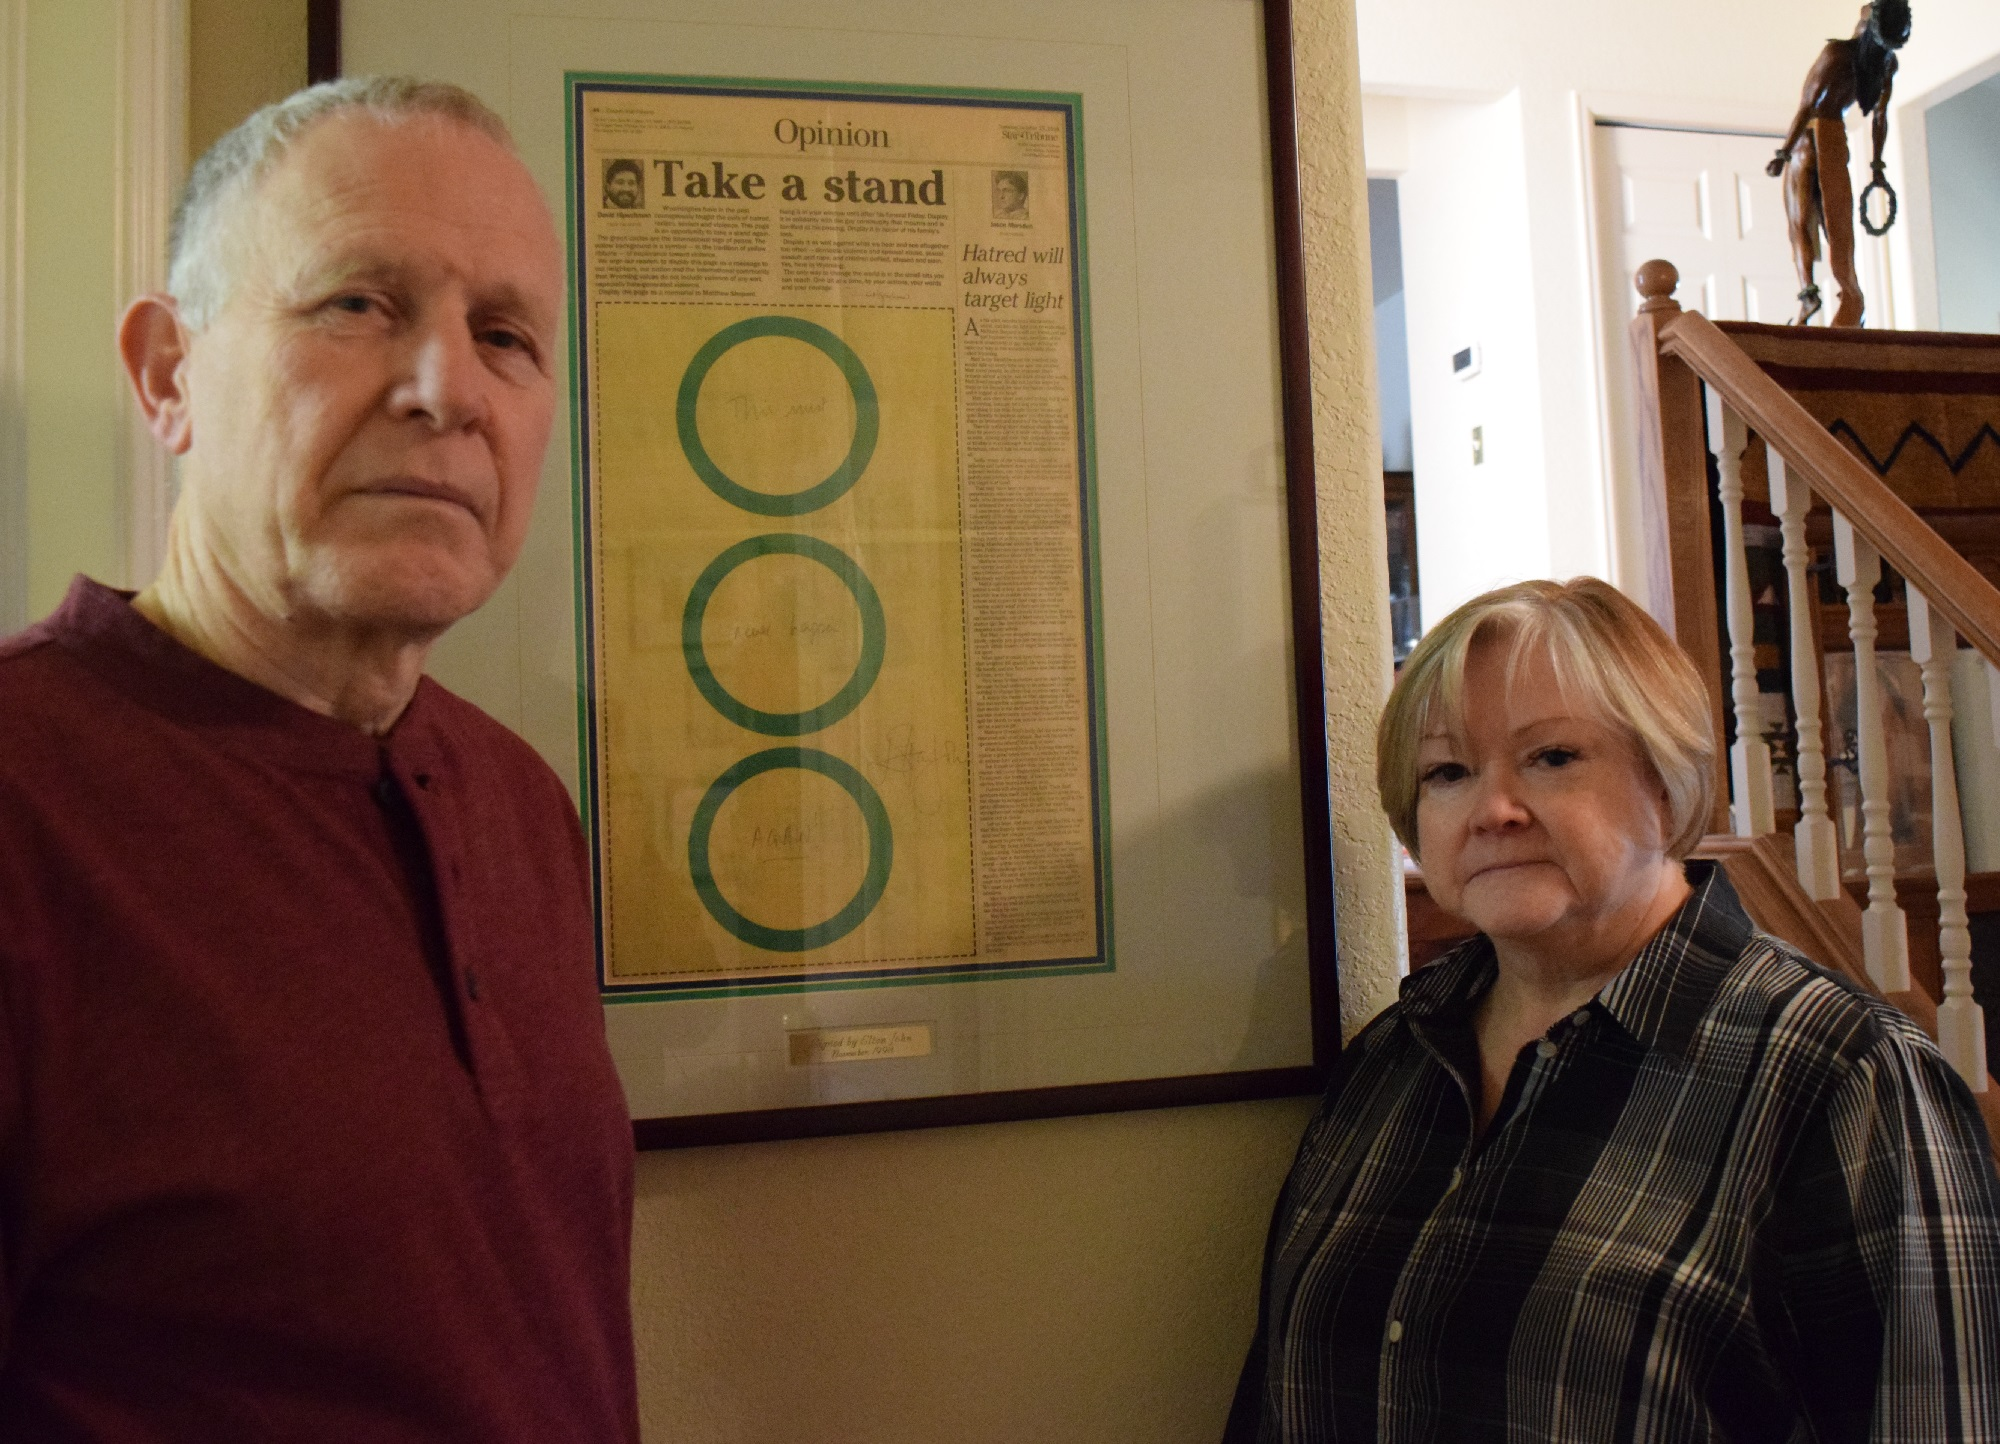 <p>Dennis and Judy Shepard stand in front of the newspaper story that ran after their gay son, Matthew was killed in October of 1998. The paper, signed by Elton John, hangs in their home in Casper, Wyo. on Jan. 8, 2019.</p>